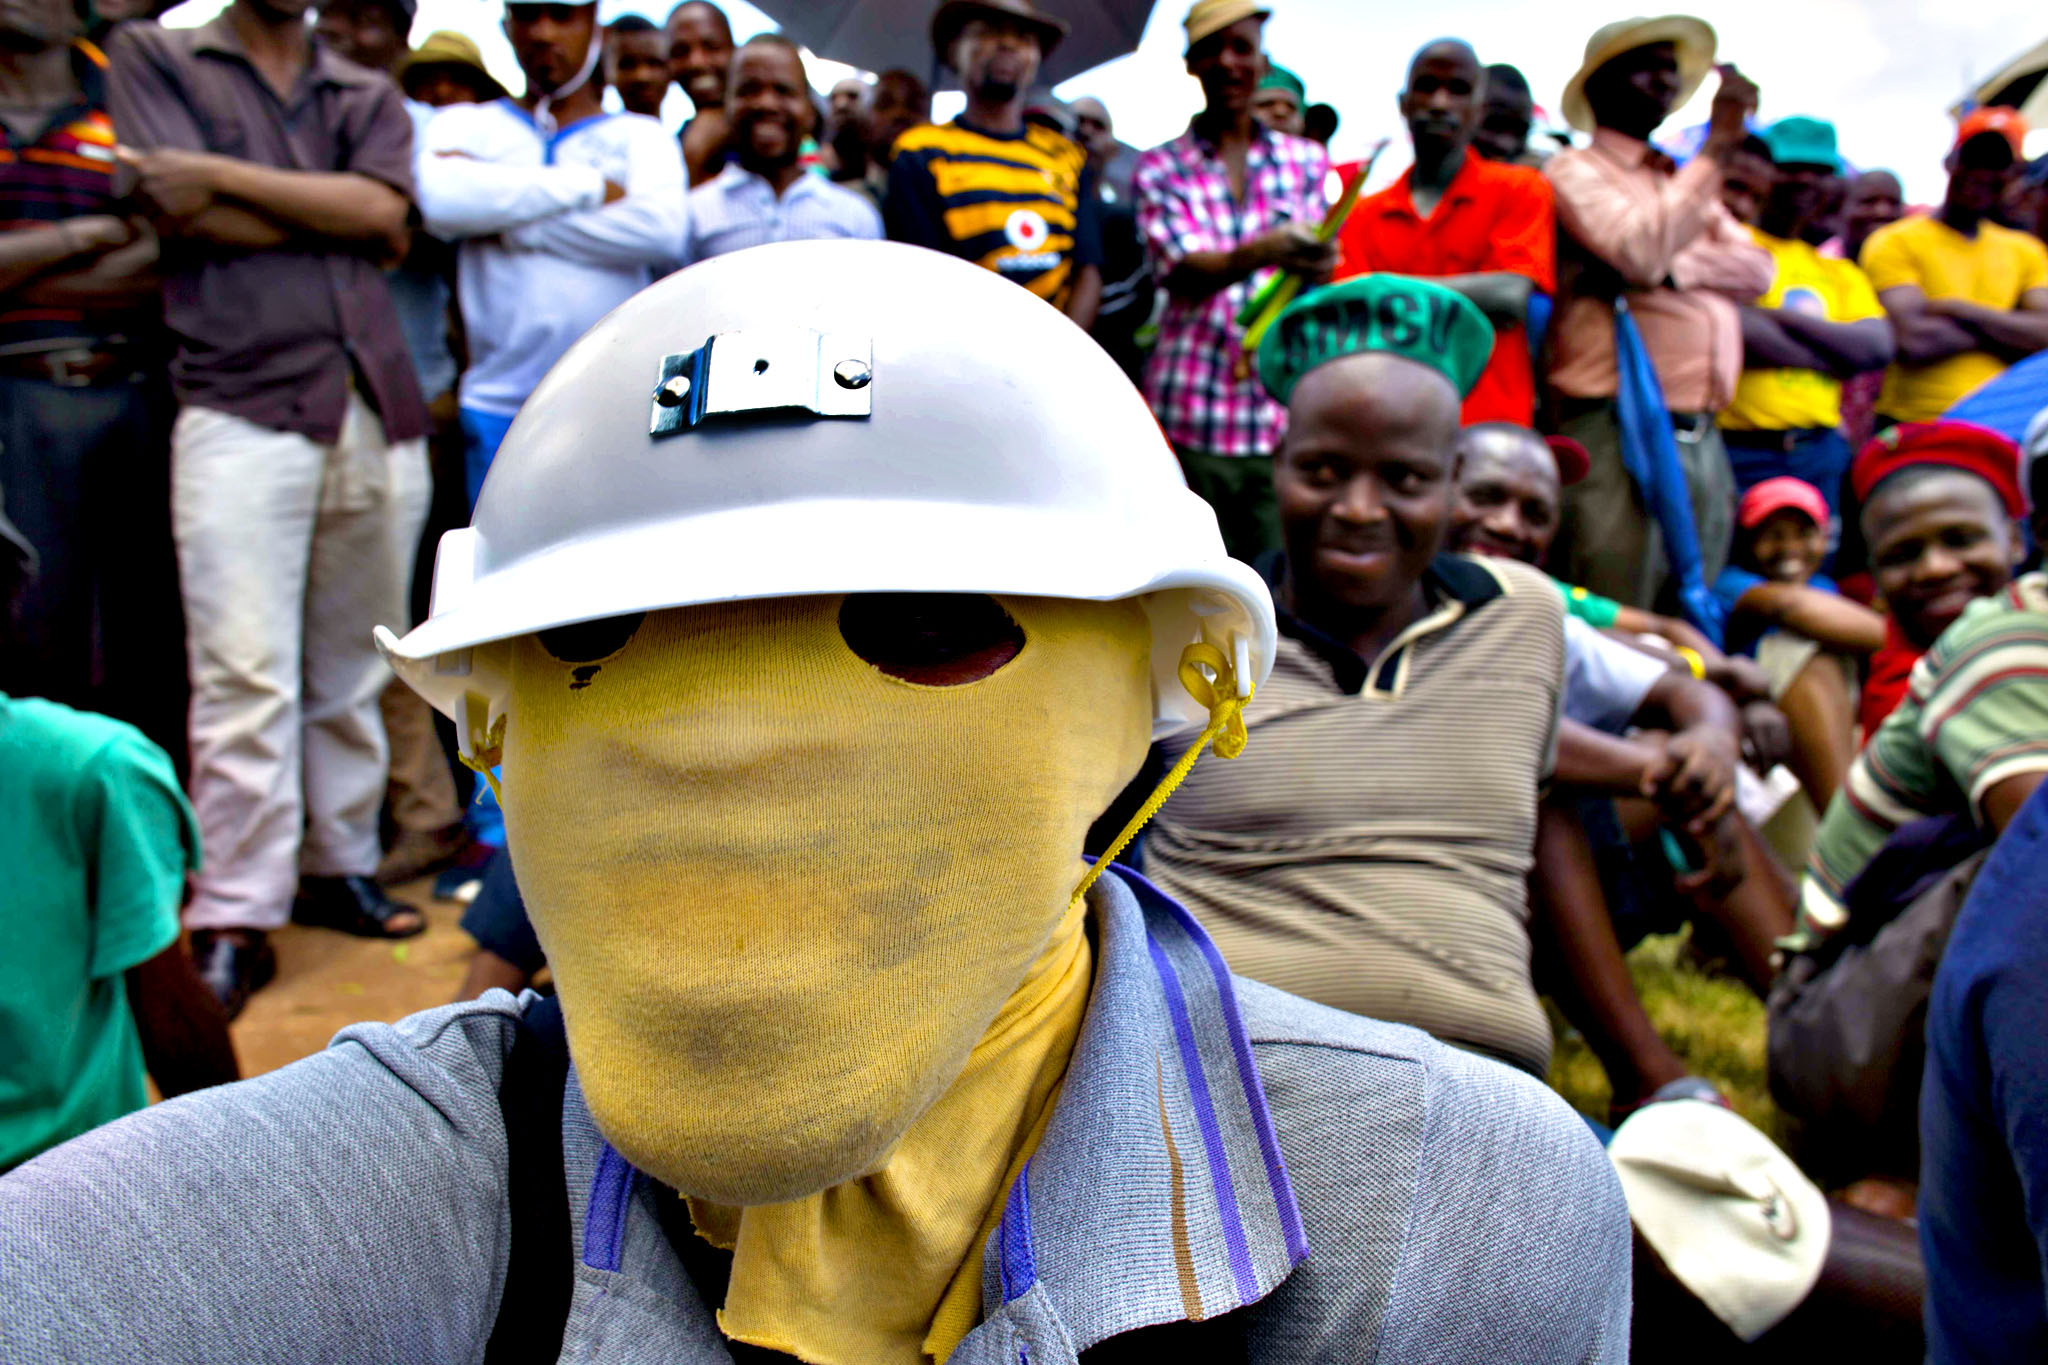 A man carrying a helmet and with his face hooded attends a rally near Lonmin's platinum mine in Marikana on January 23, 2014. Tens of thousands of workers at the world's three top platinum producers were set to down tools today in a pay strike that could have a devastating impact in Africa's largest economy. Up to 80,000 workers at Impala Platinum, Anglo American Platinum and Lonmin mines will embark on an indefinite strike from early Thursday, after their demand to double the minimum monthly wage to $1,150 was rejected.